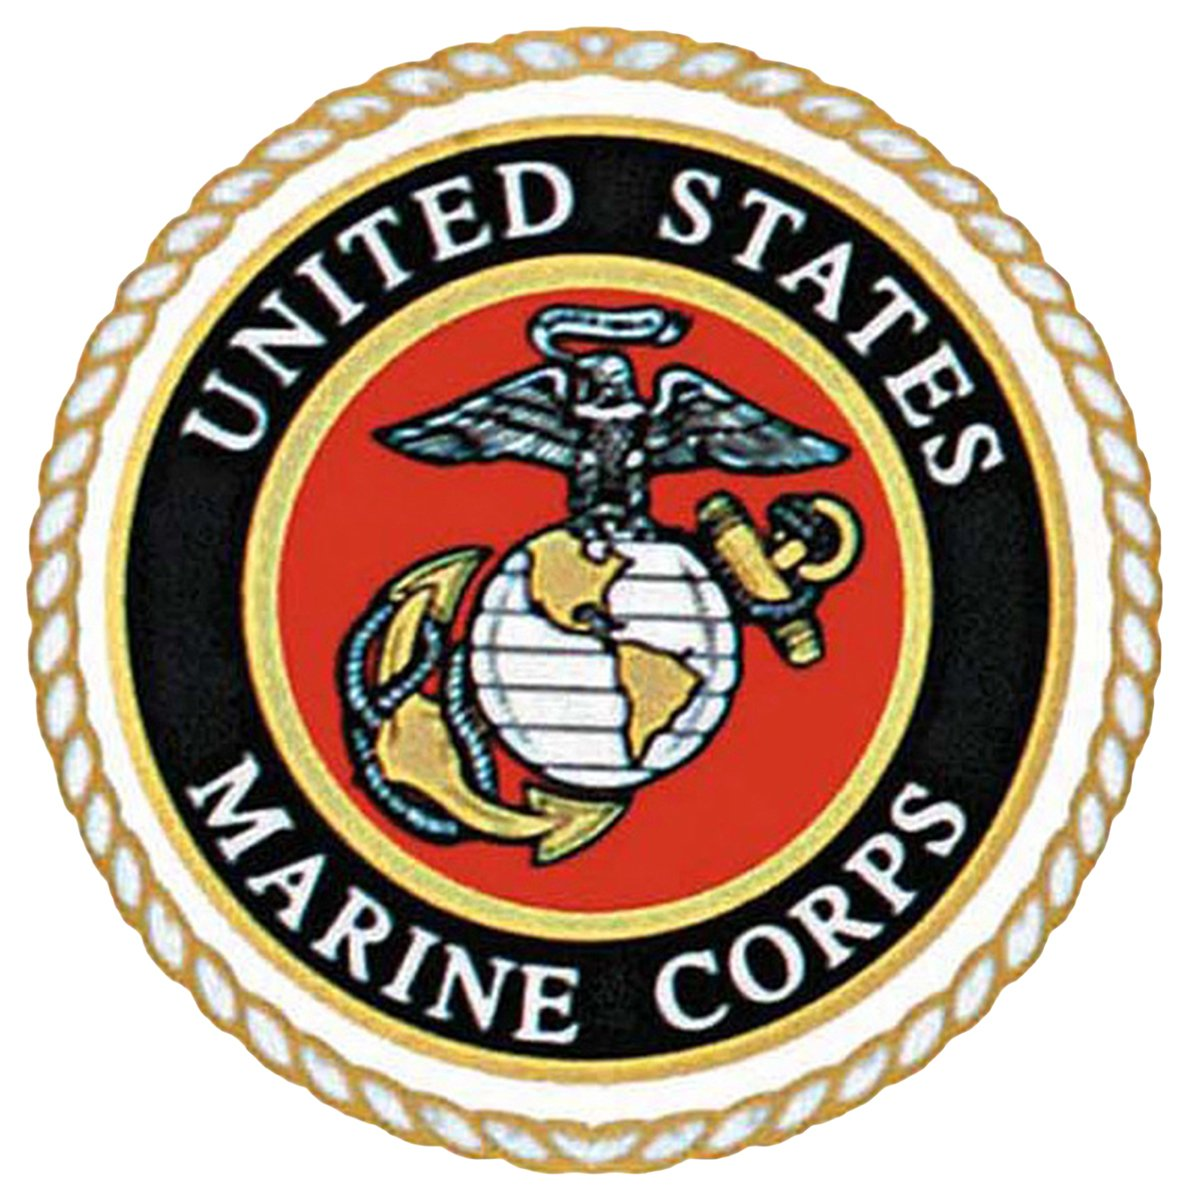 Direct 1219 Rothco US Marine Corps Globe /& Anchor Decal//Outside Pro-Motion Distributing